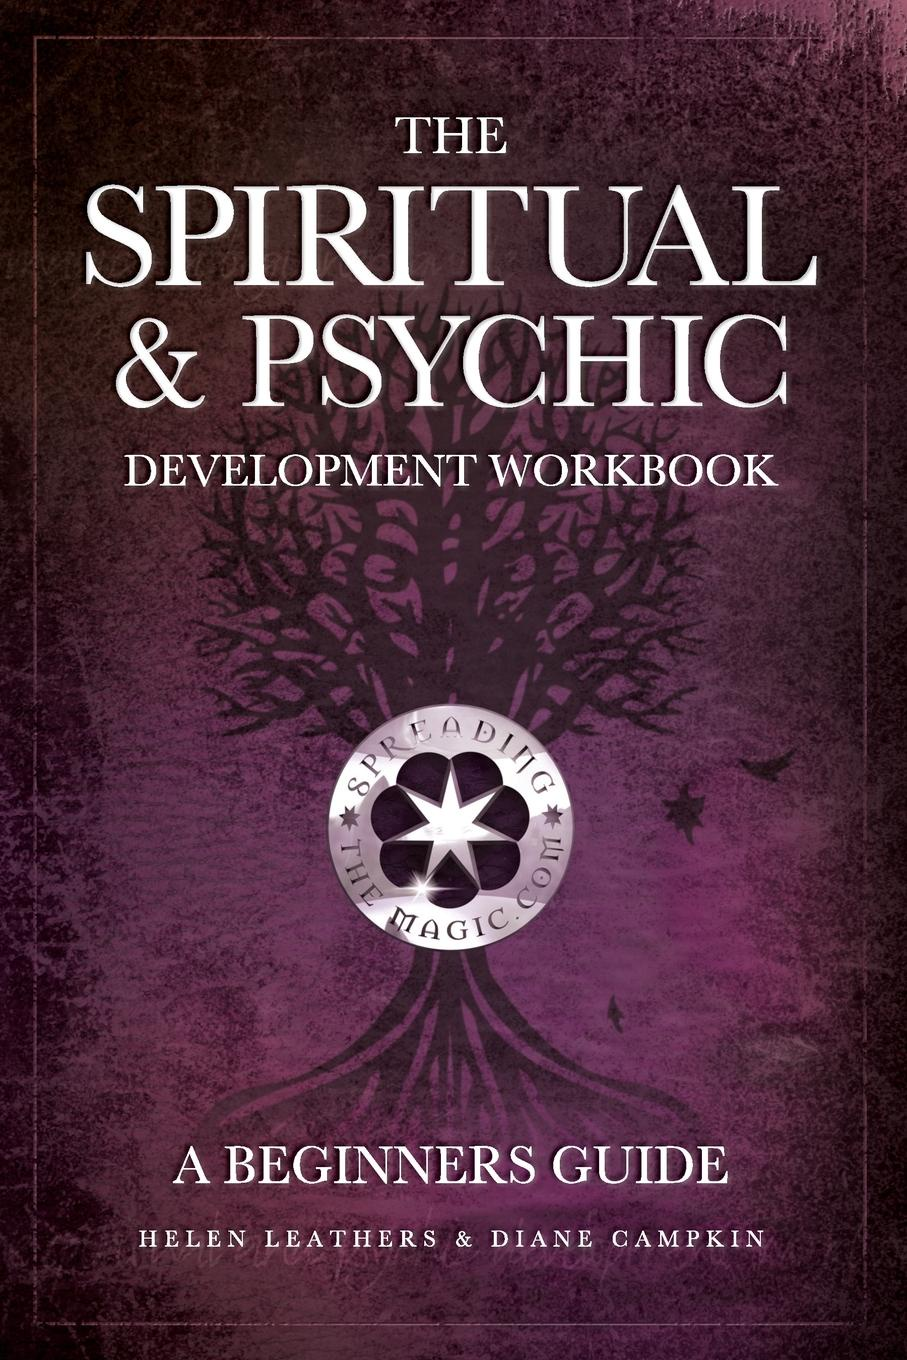 Helen Leathers, Diane Campkin The Spiritual . Psychic Development Workbook - A Beginners Guide the conran beginners guide to decorating